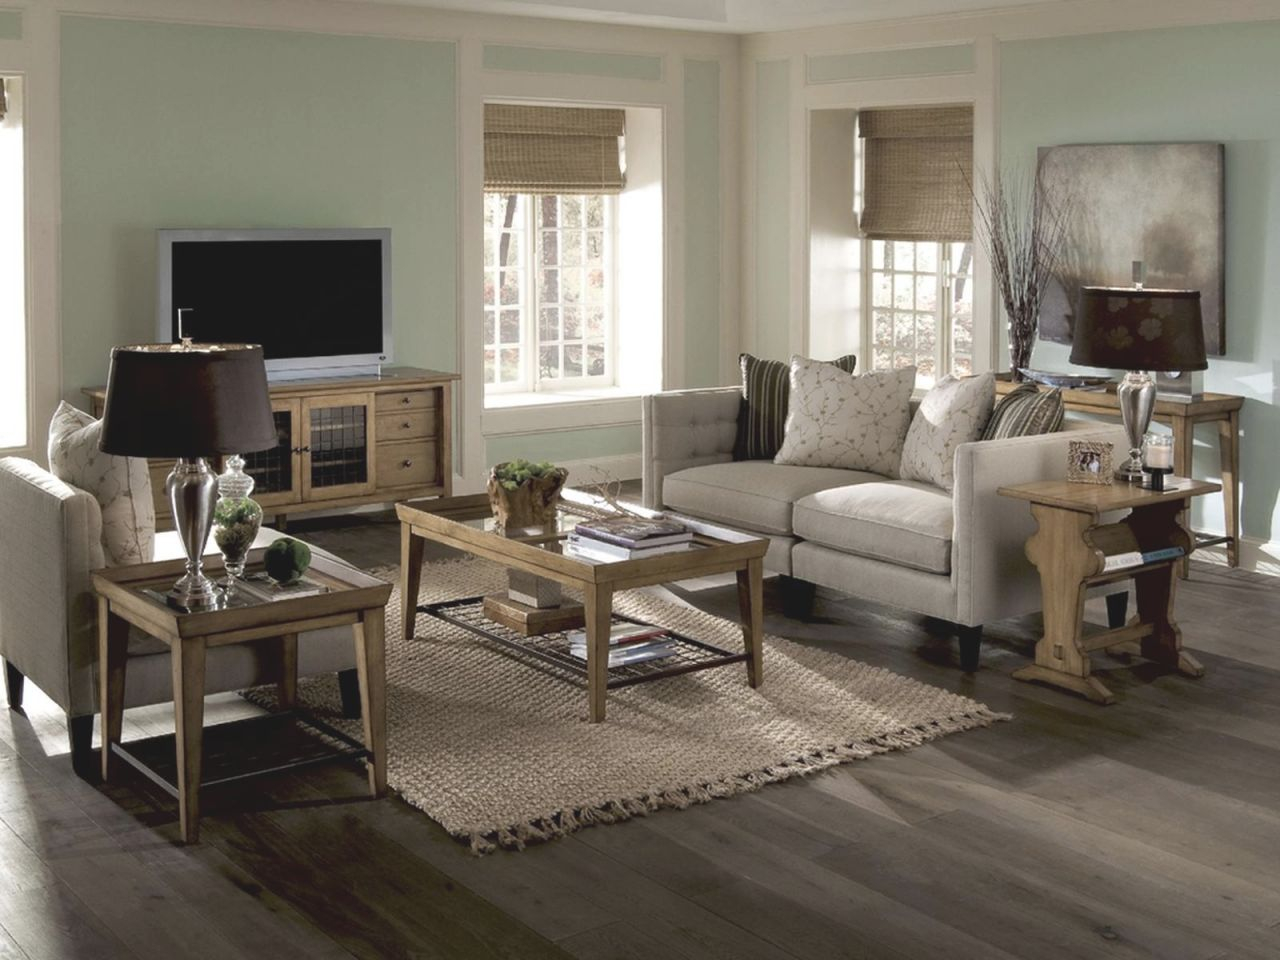 Modern Country Living Room Ideas Svc2baltics Ideas For Inside Country Living Room Decorating Ideas Awesome Decors